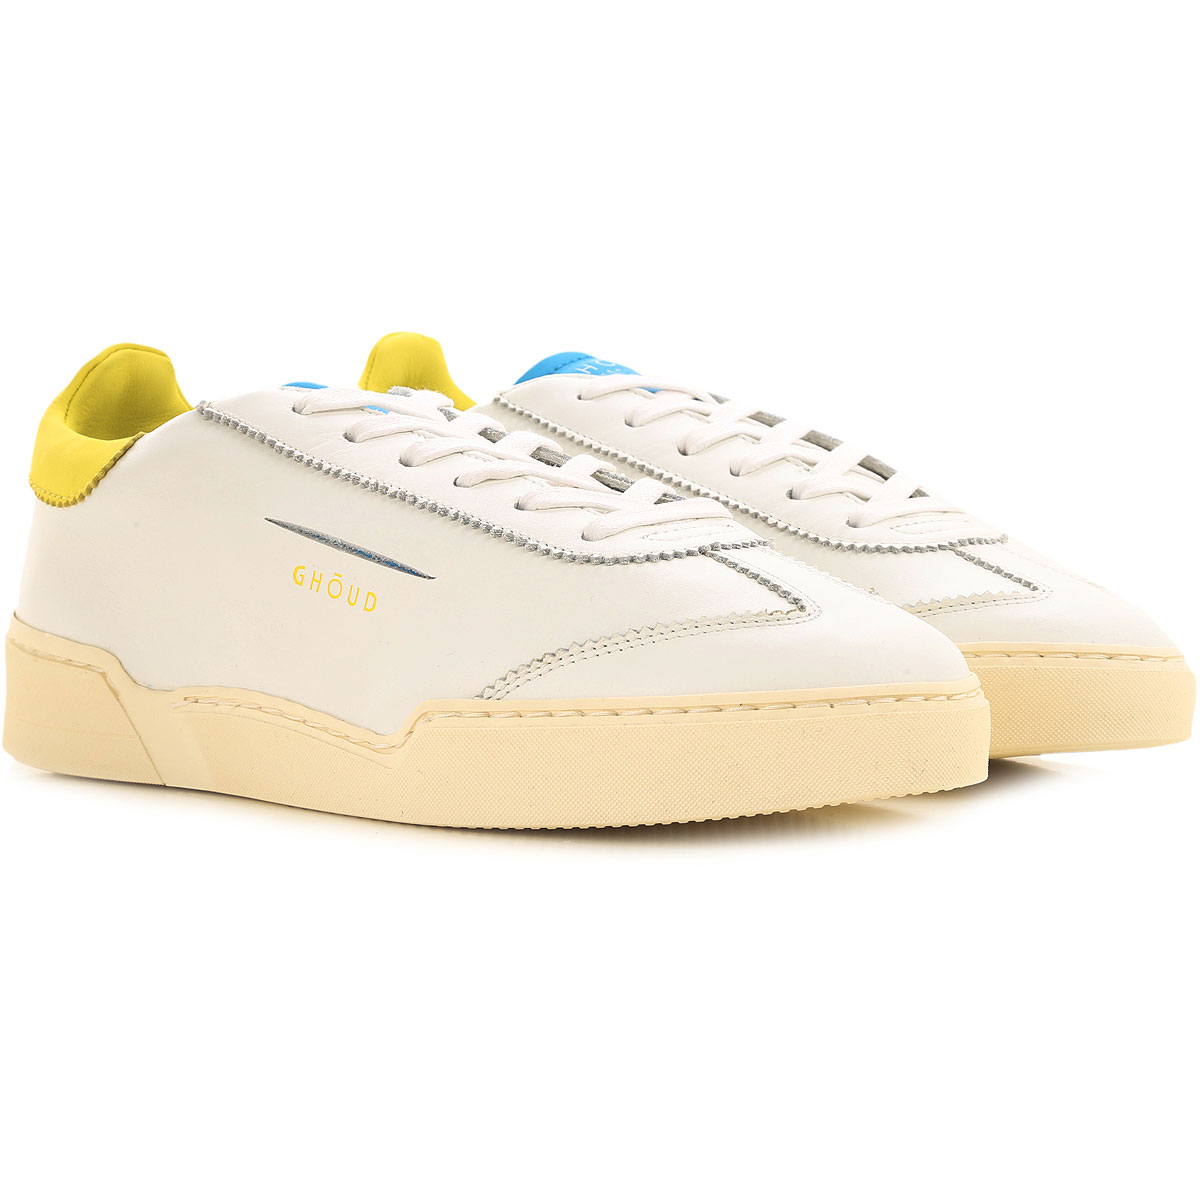 Ghoud Sneakers for Women On Sale, White, Leather, 2019, 10 6 7 8